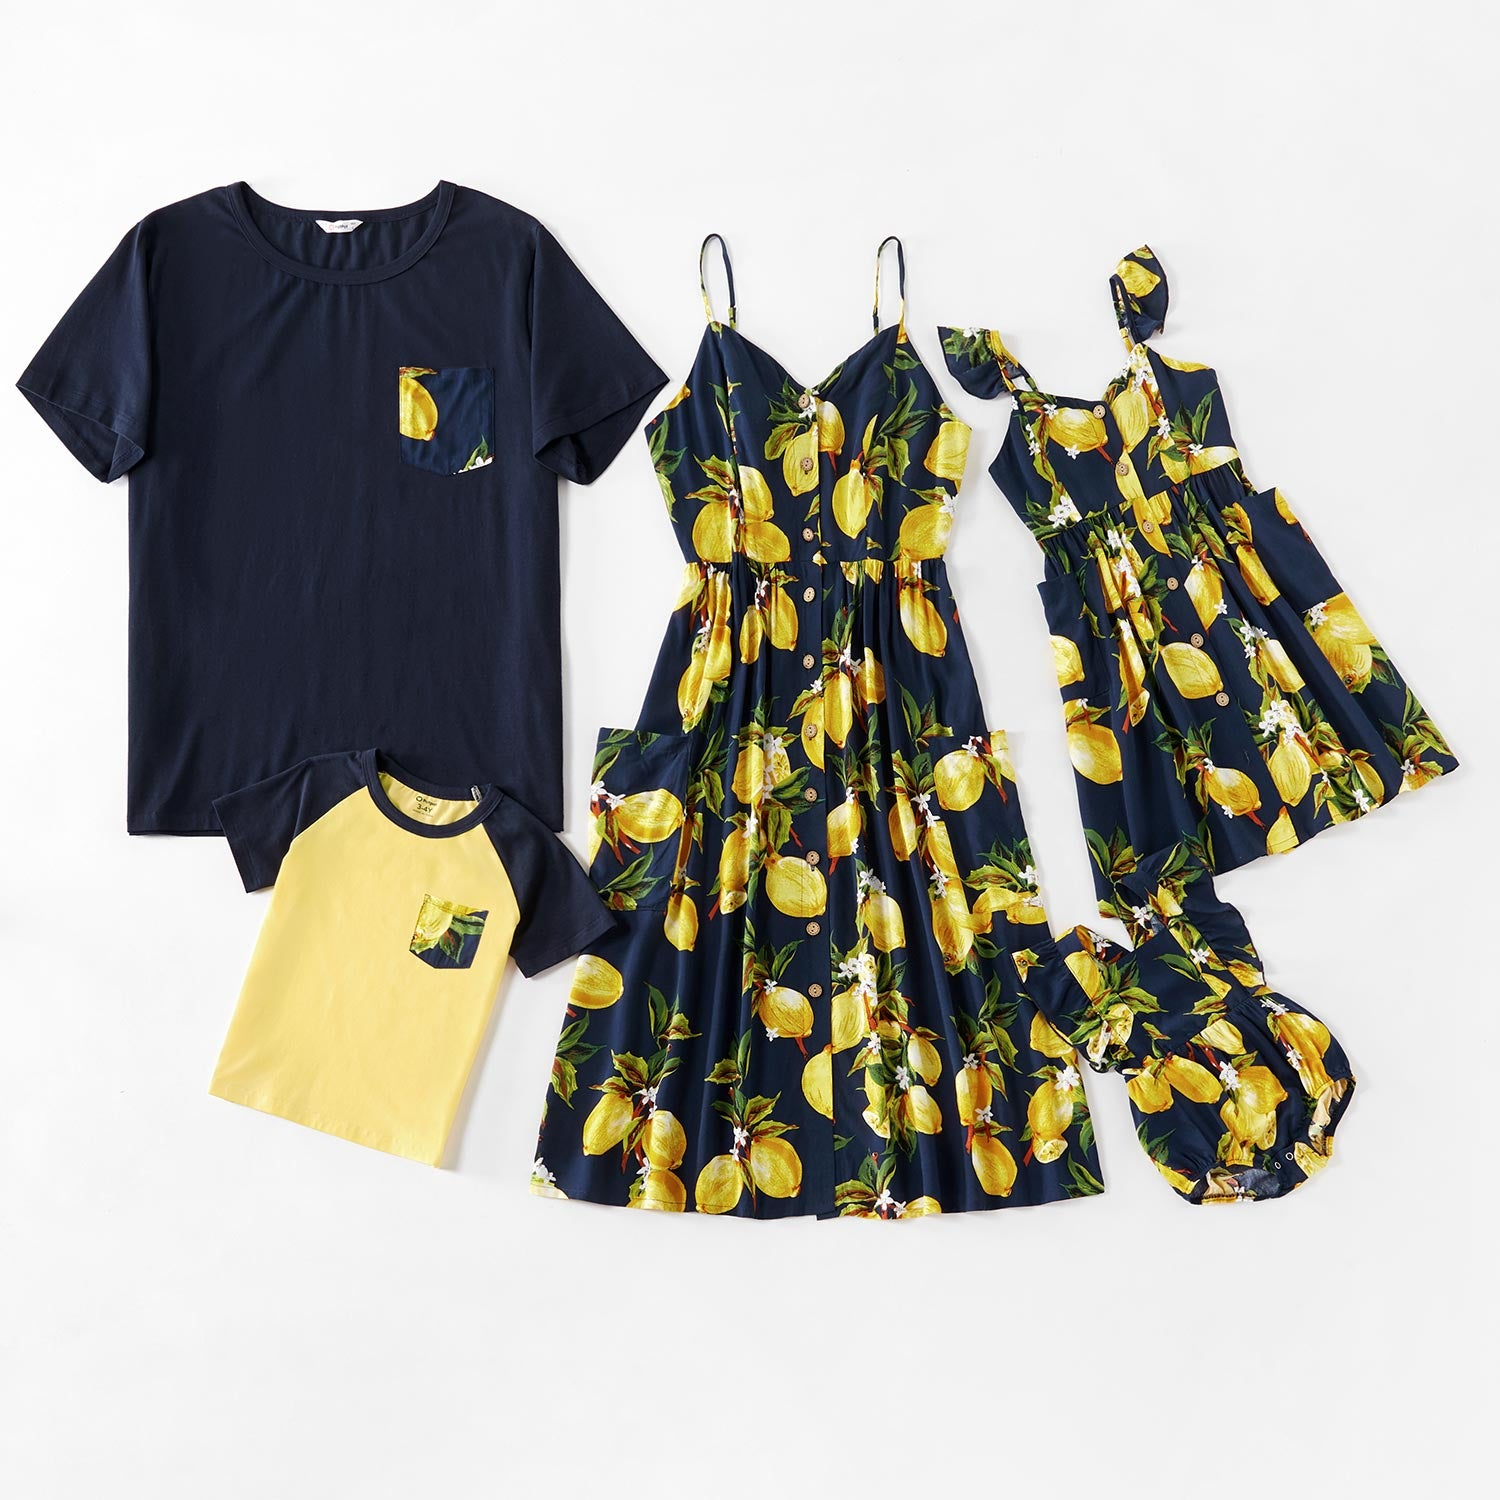 Mosaic Family Matching Lemon Series Tank Dresses - Rompers - Tops